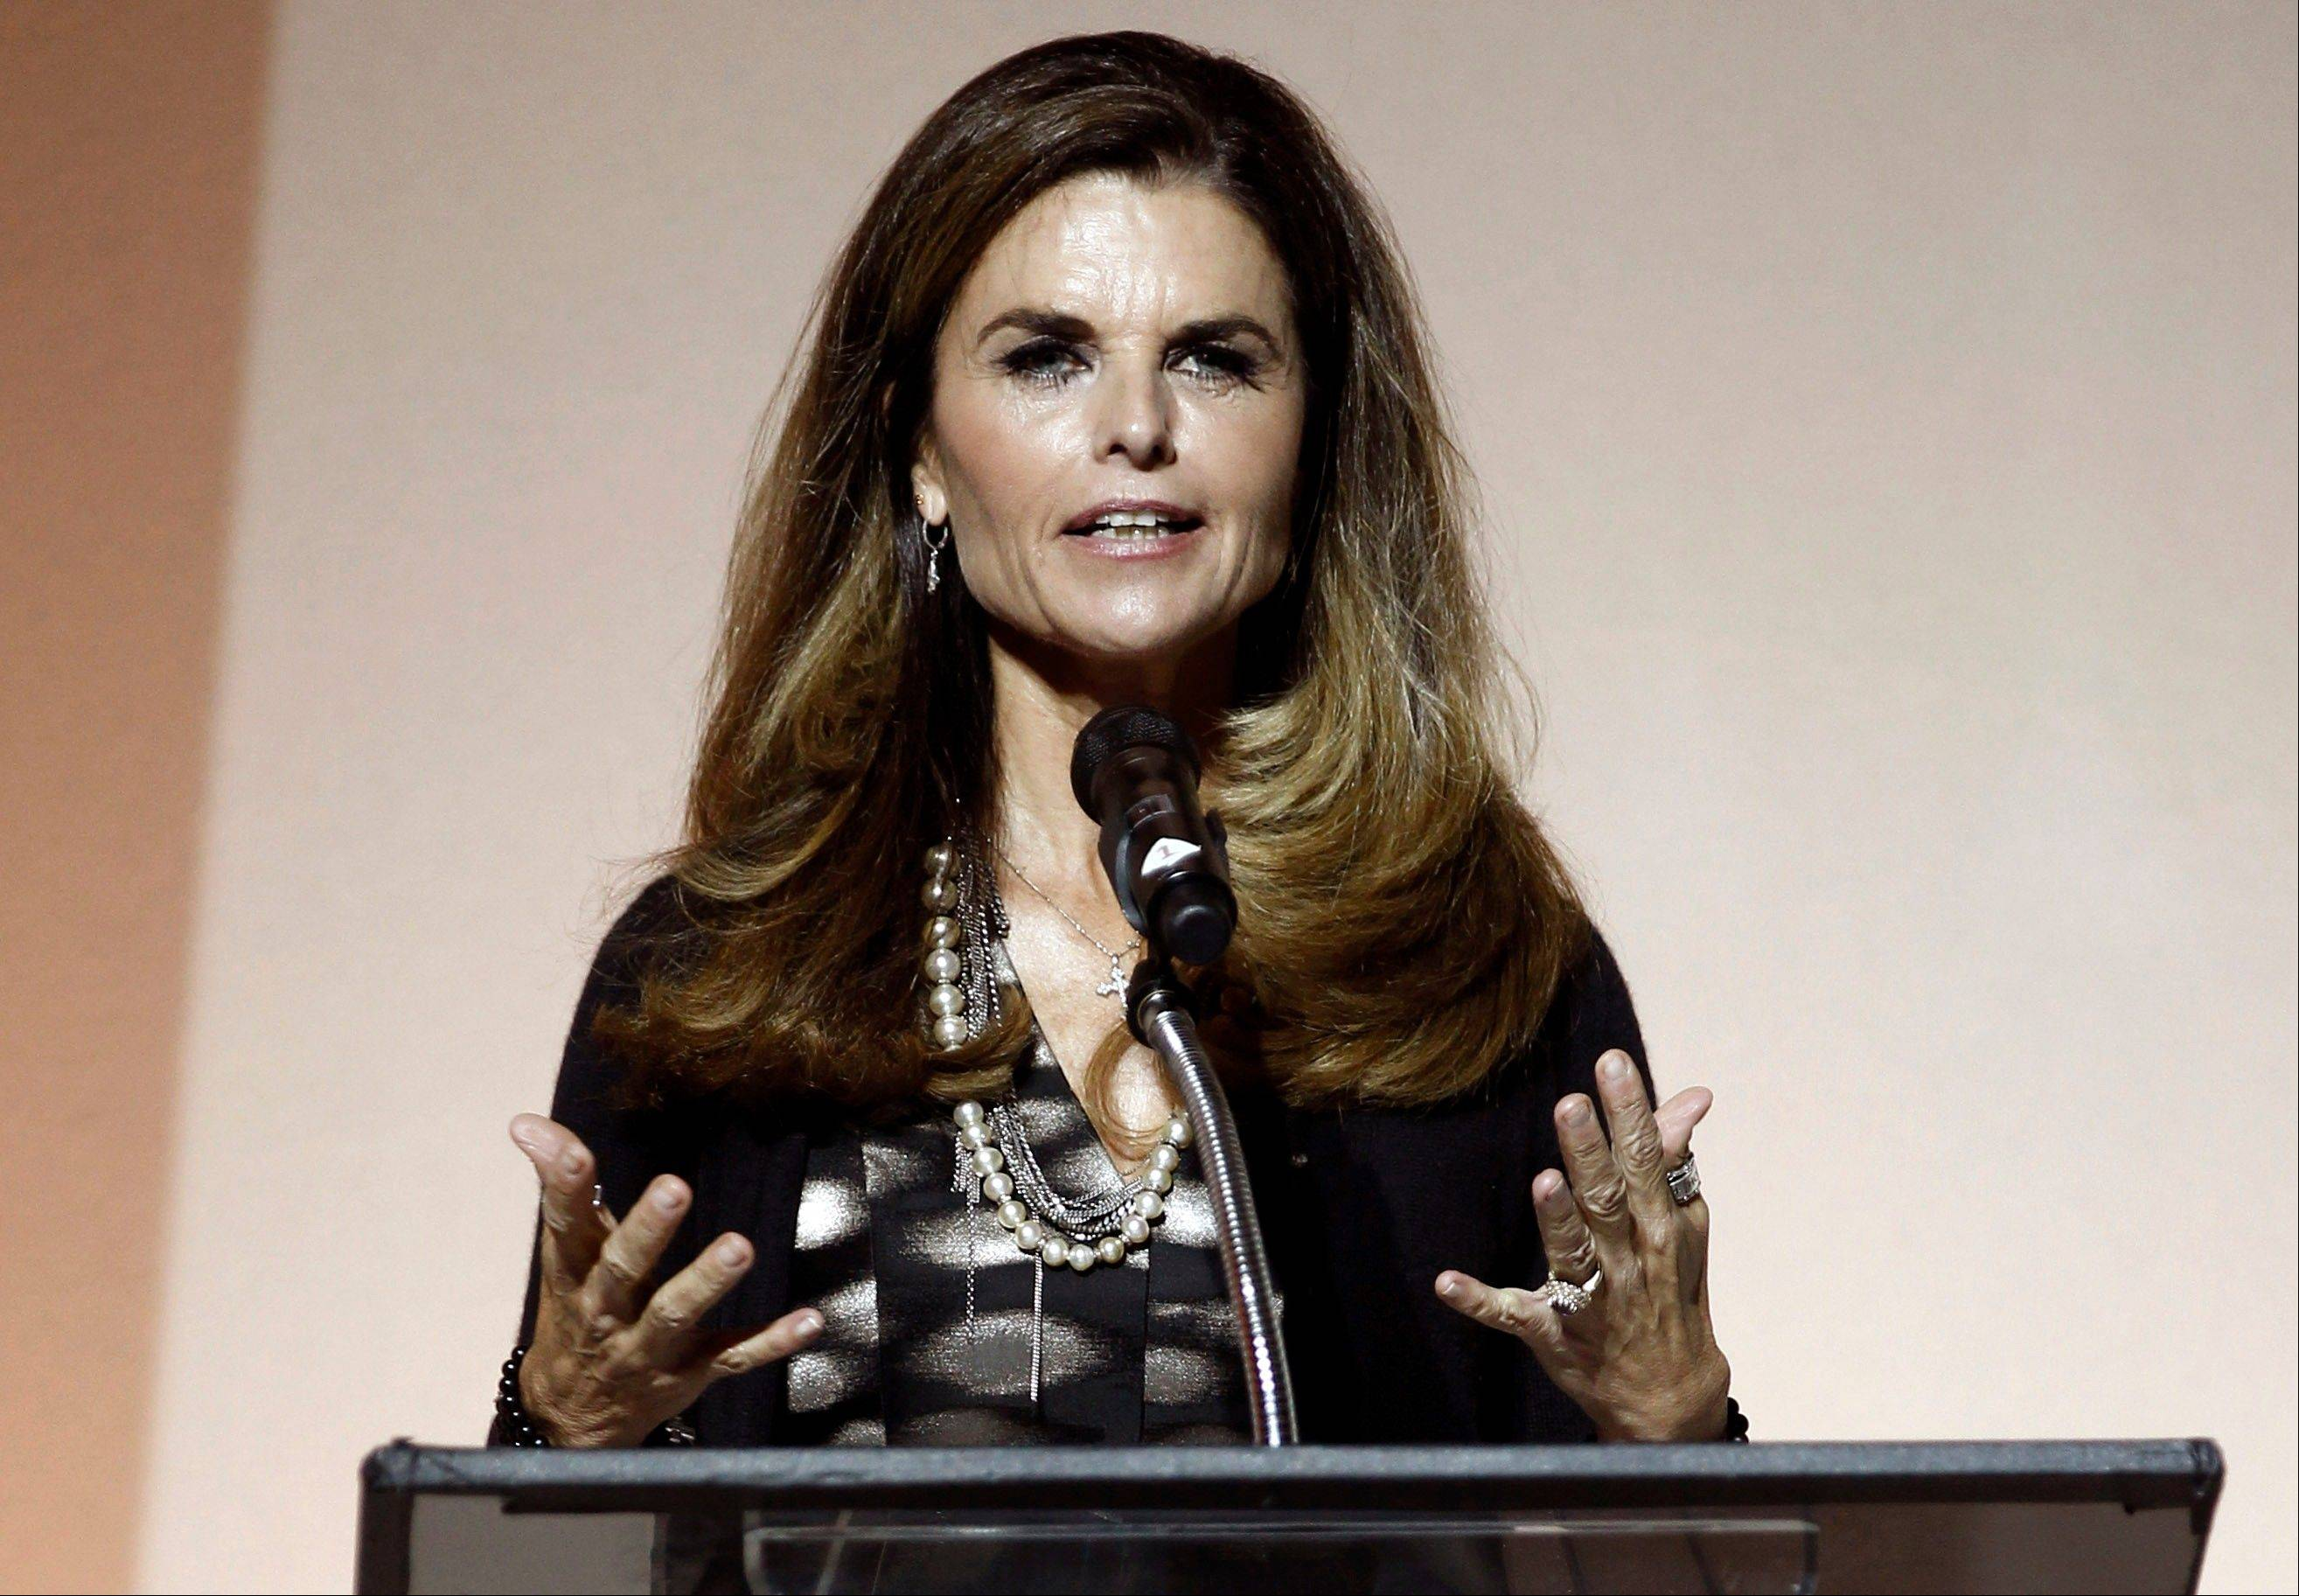 NBC announced Tuesday that Maria Shriver will join the network as a special anchor working on issues surrounding the shifting roles of women in American life.